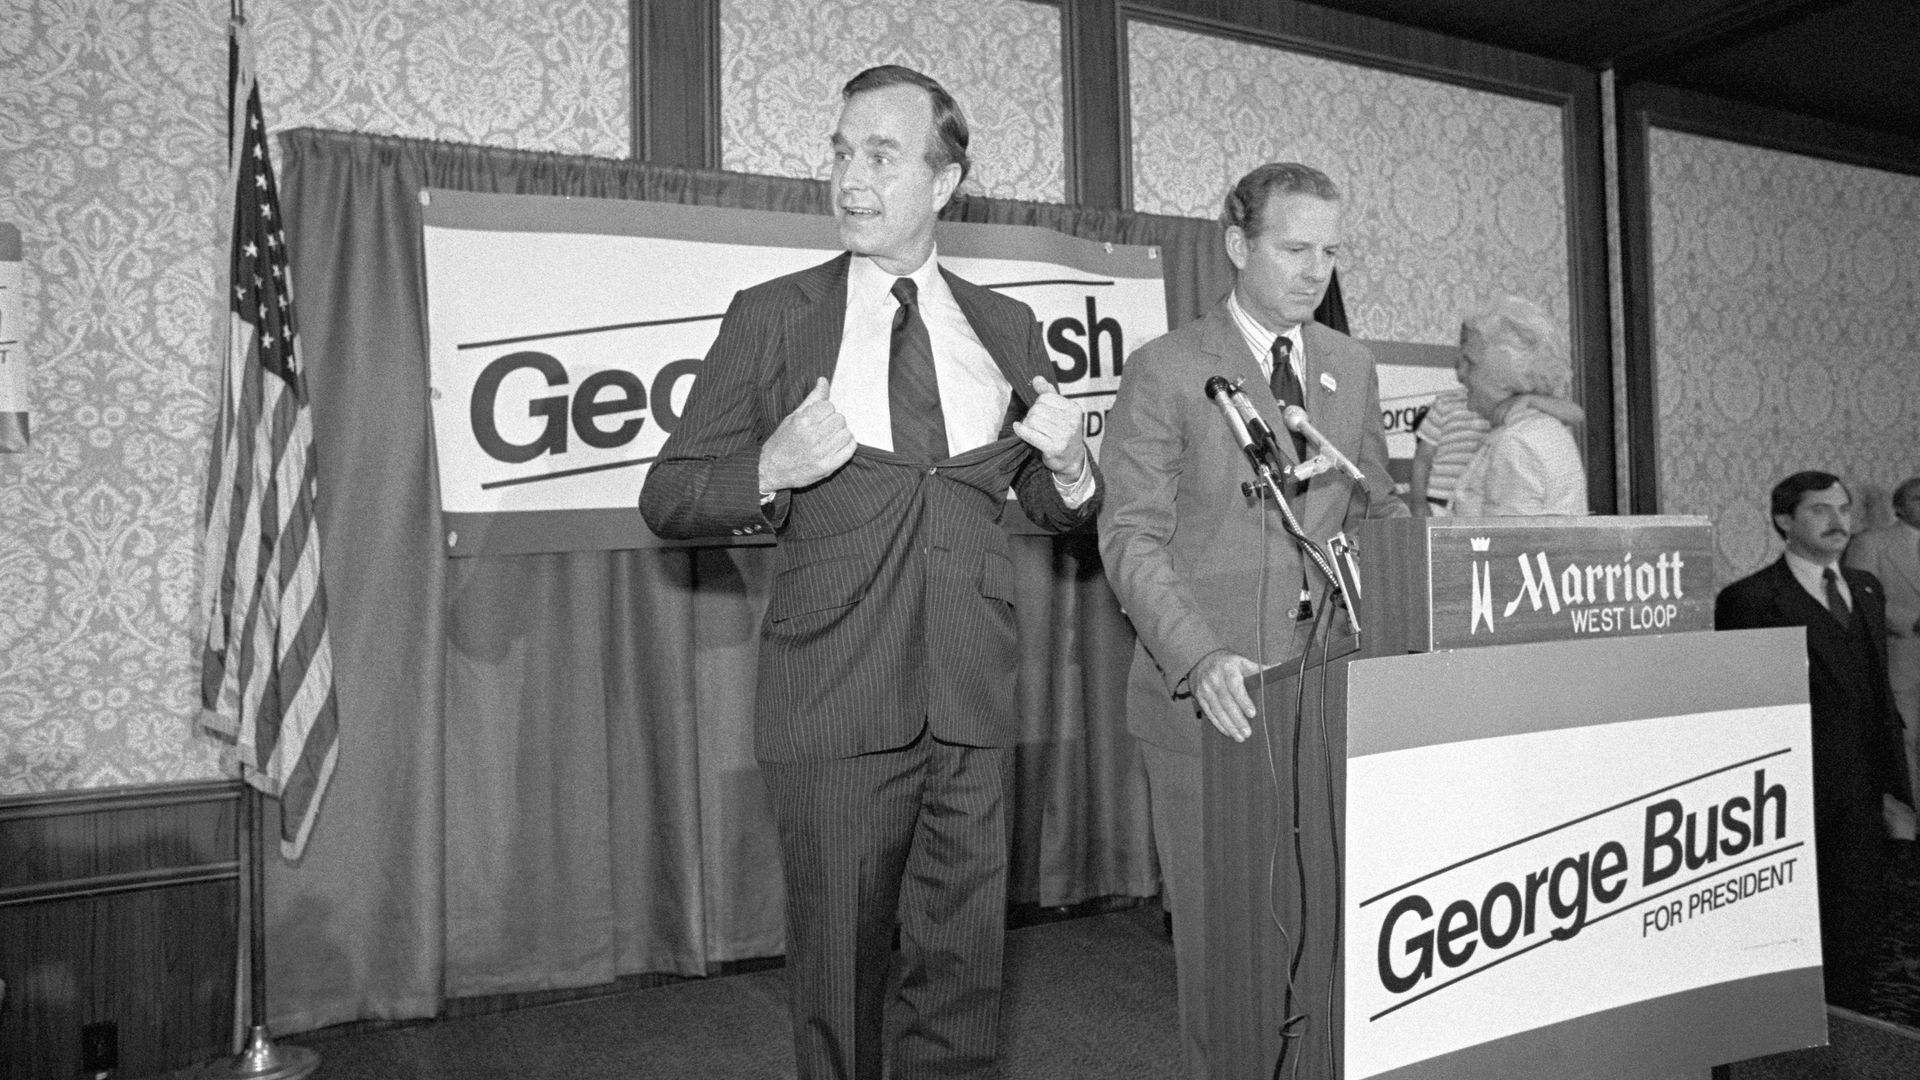 In 1980, Bush campaign manager James Baker stands at the podium while George H.W. Bush makes a joking gesture when told to loosen it up.